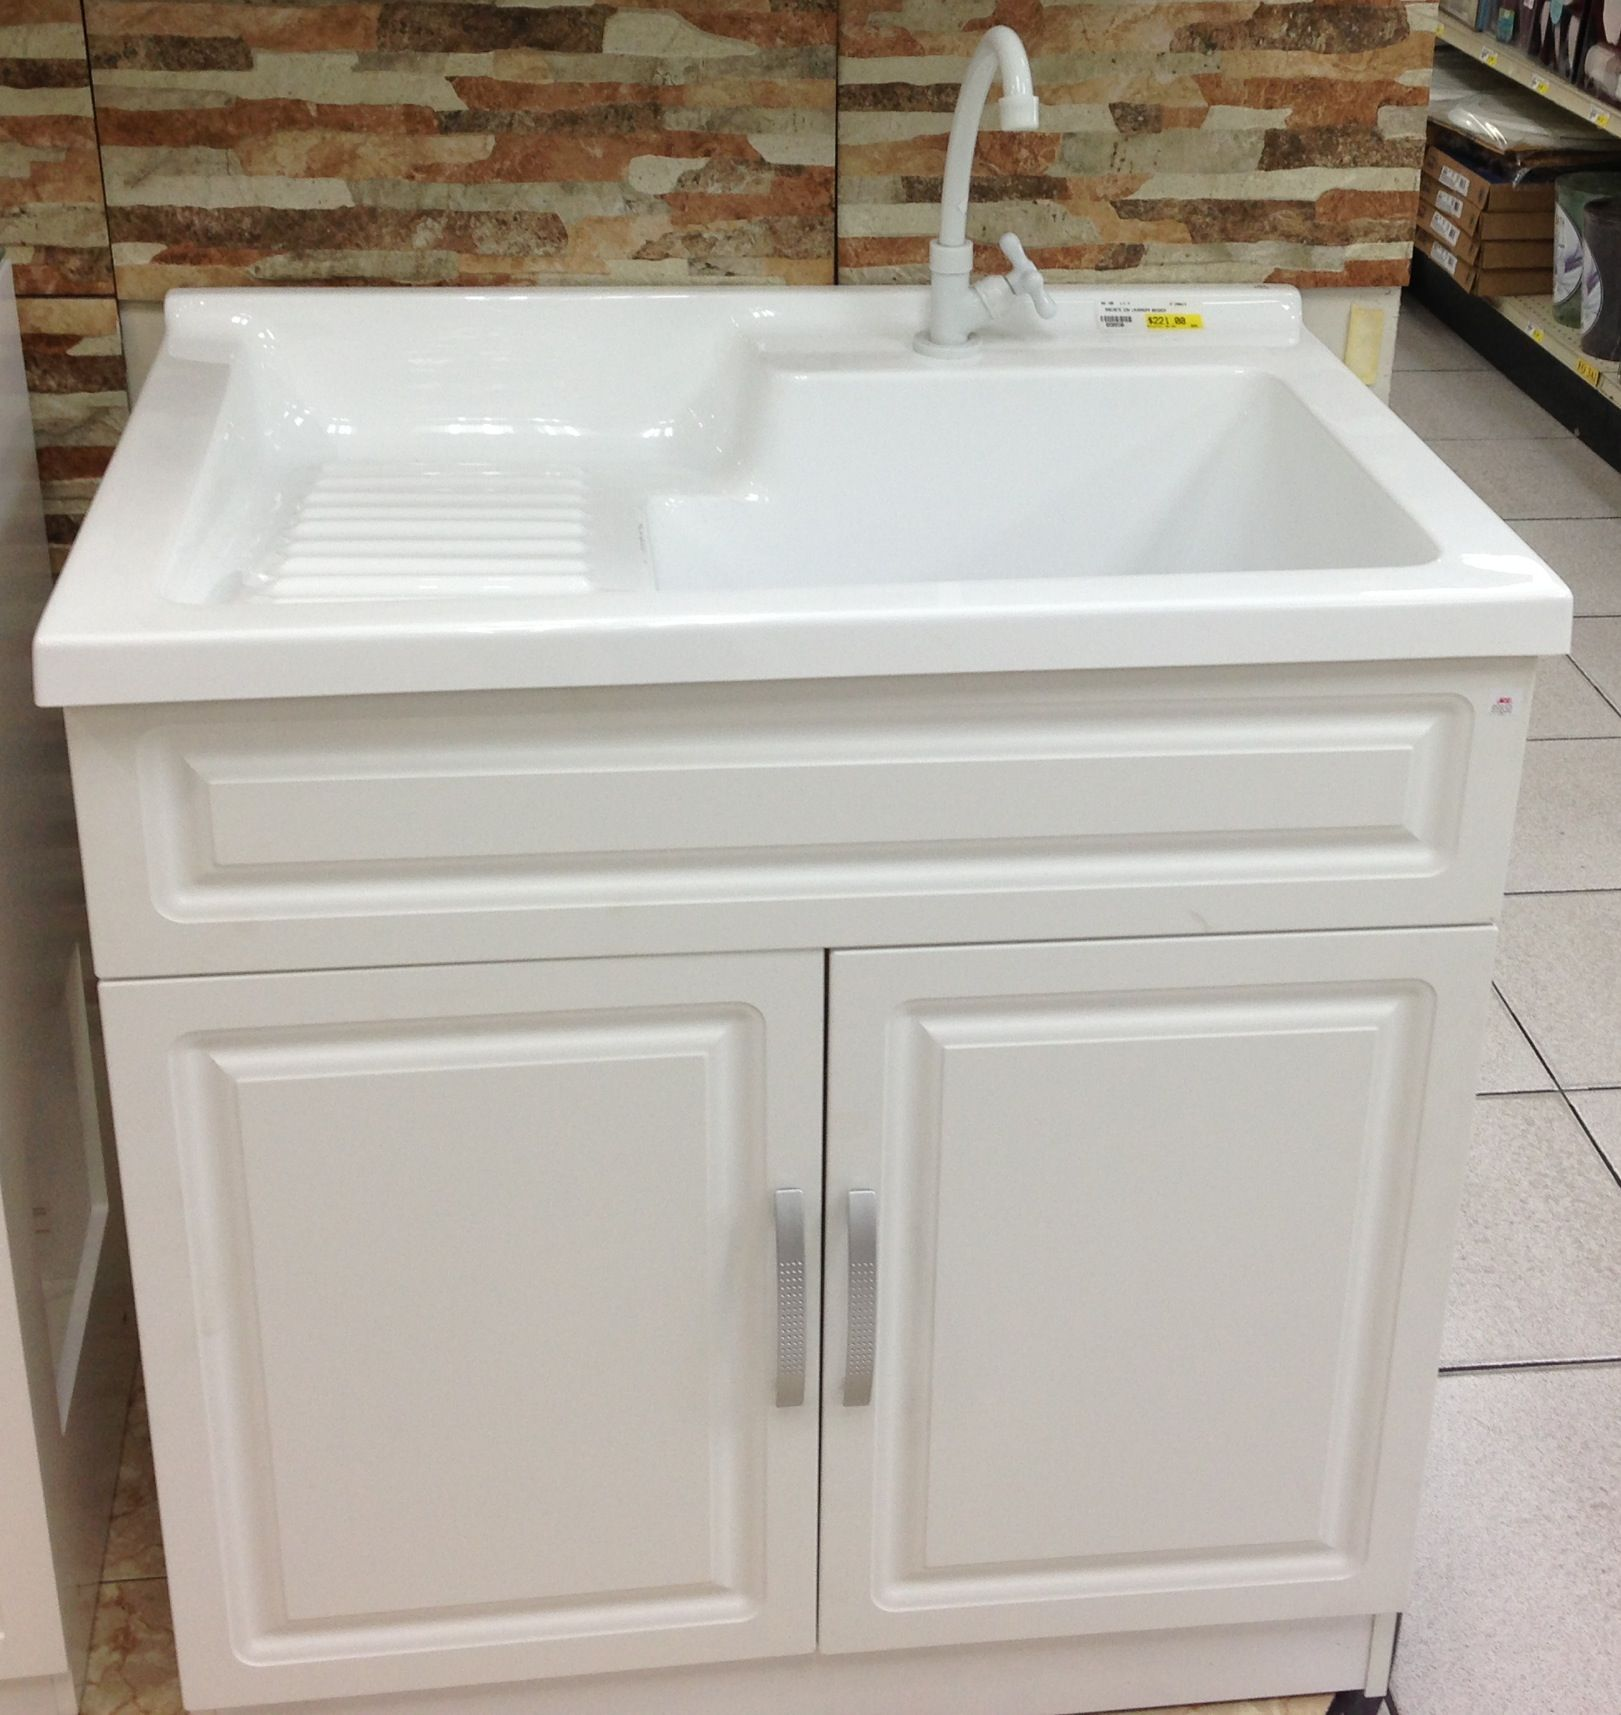 Functional Laundry Sink Laundry Sink Laundry Room Flooring Laundry Room